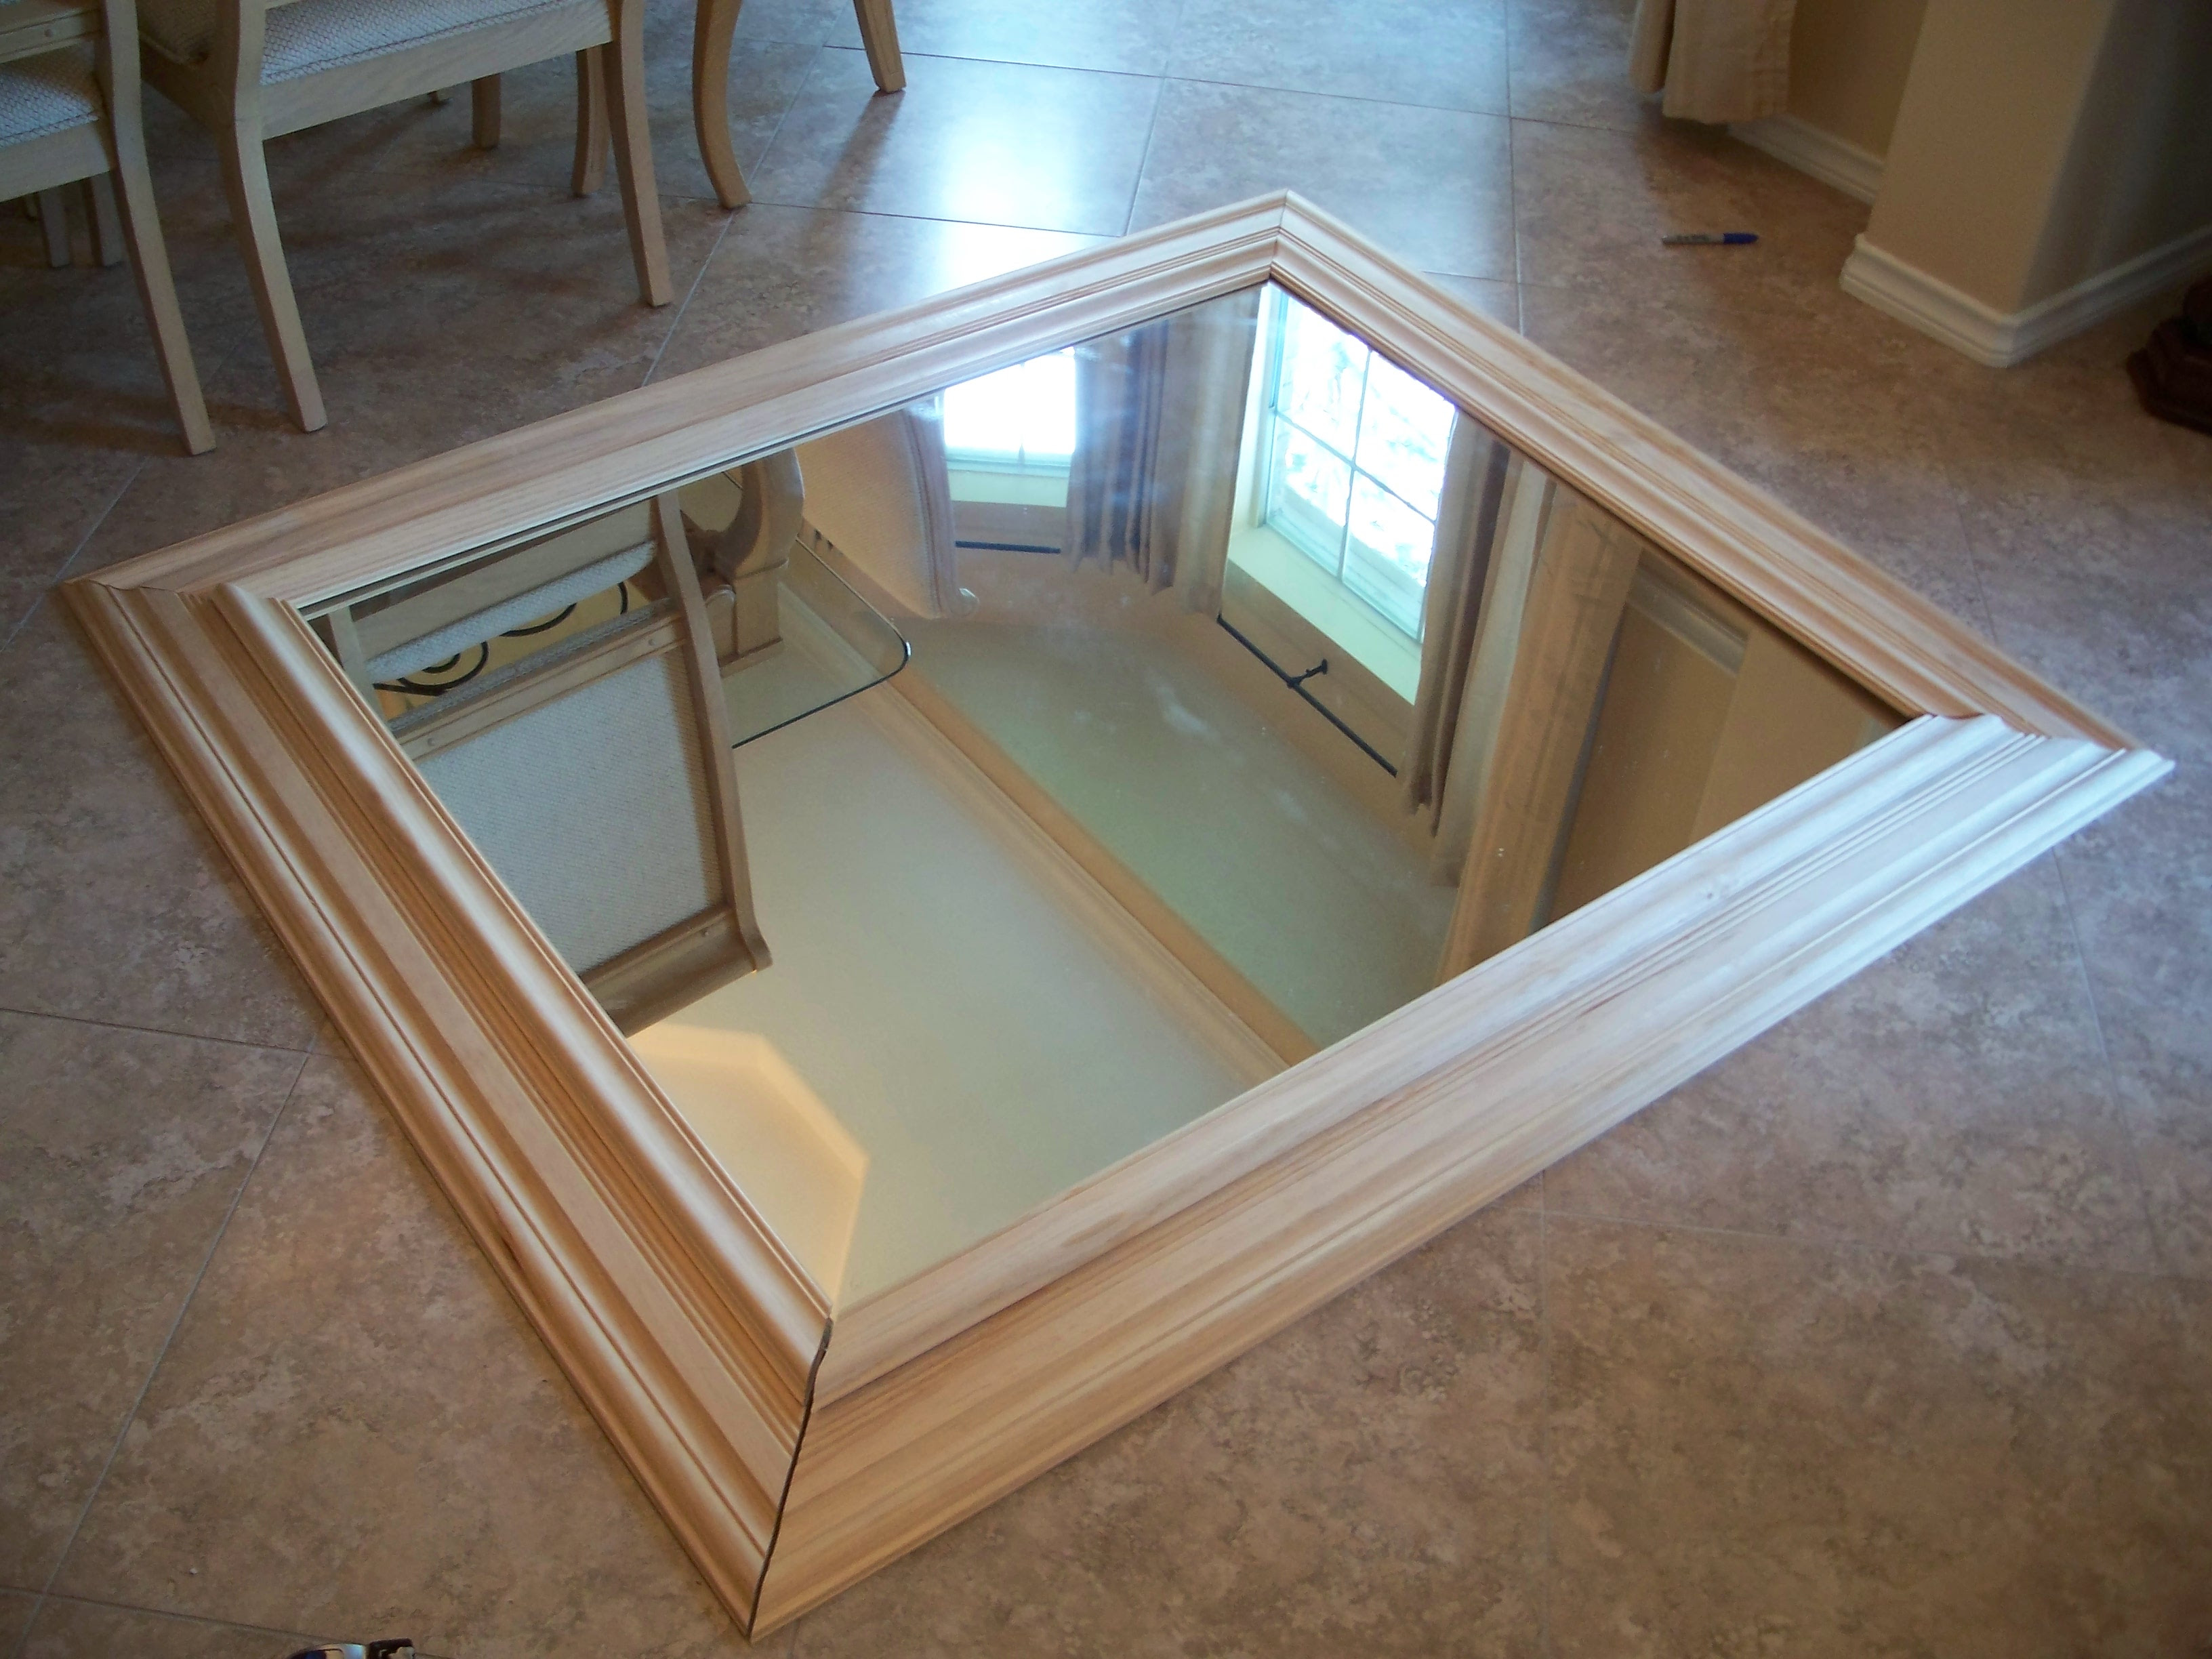 How to Make Wood Frame Mirror